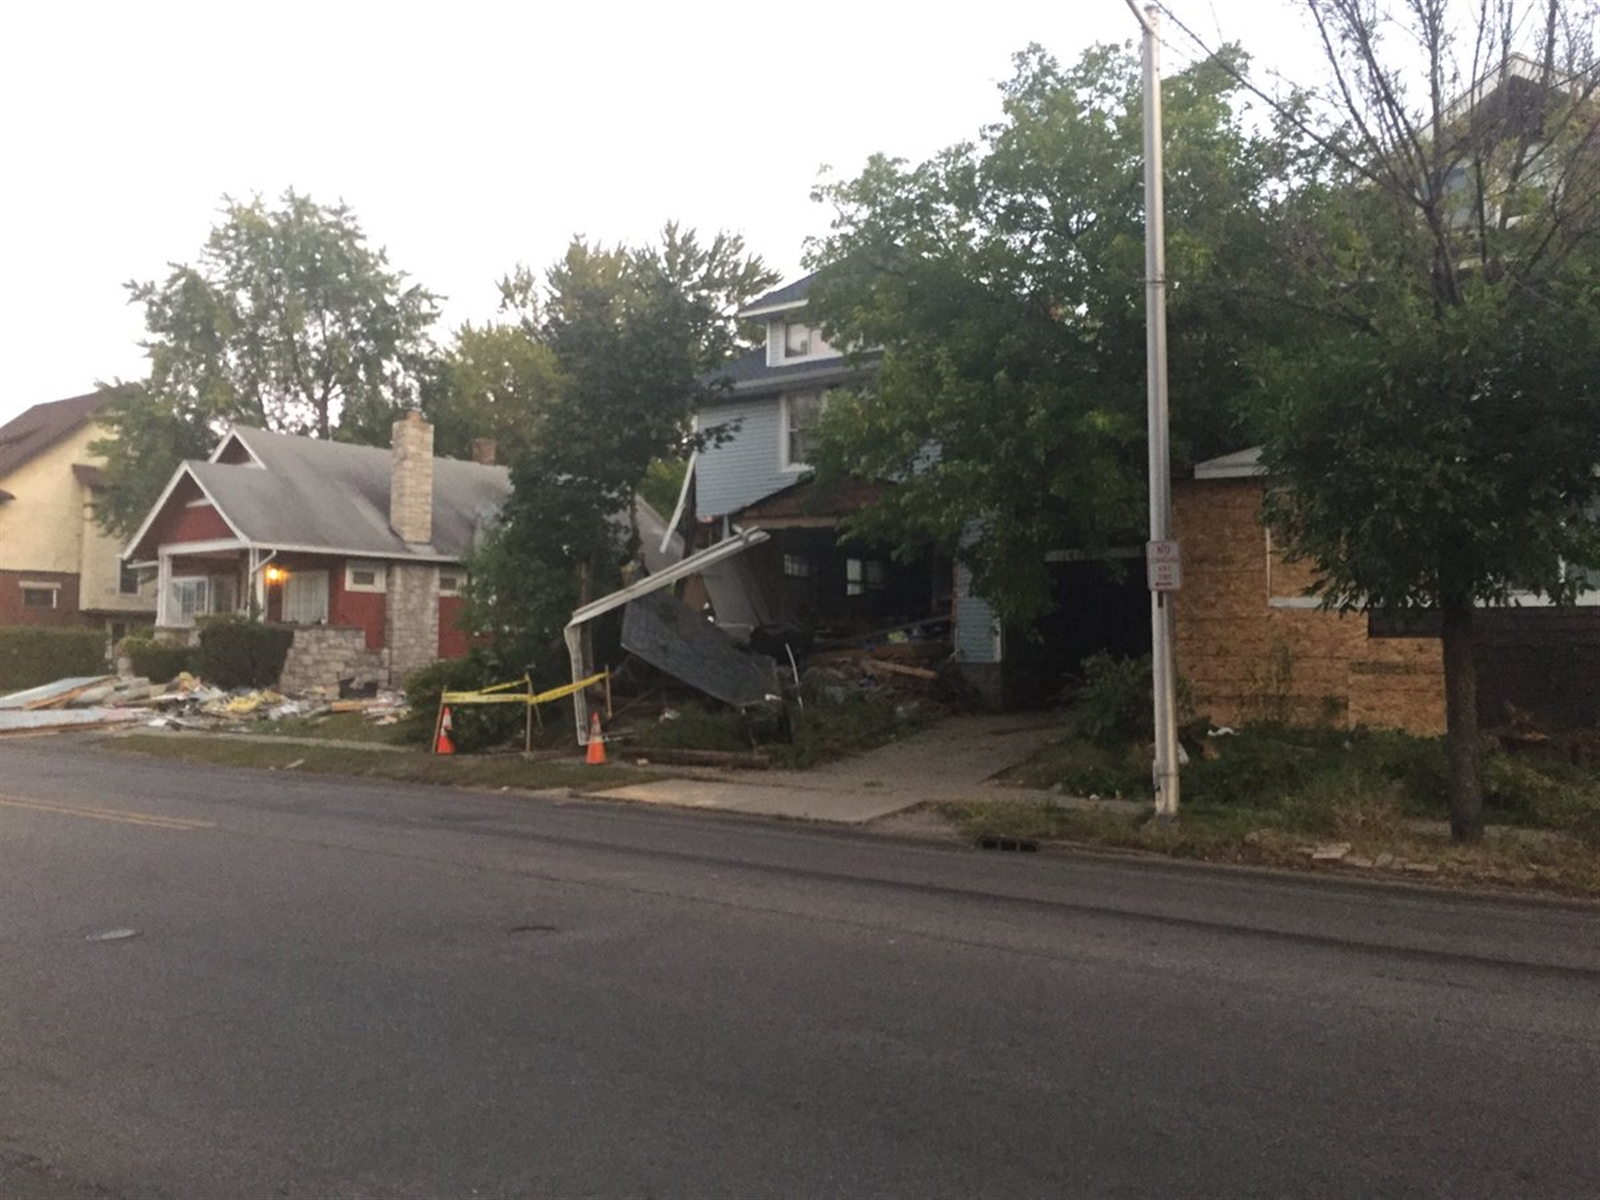 The three homes damaged when a pickup crashed into them.